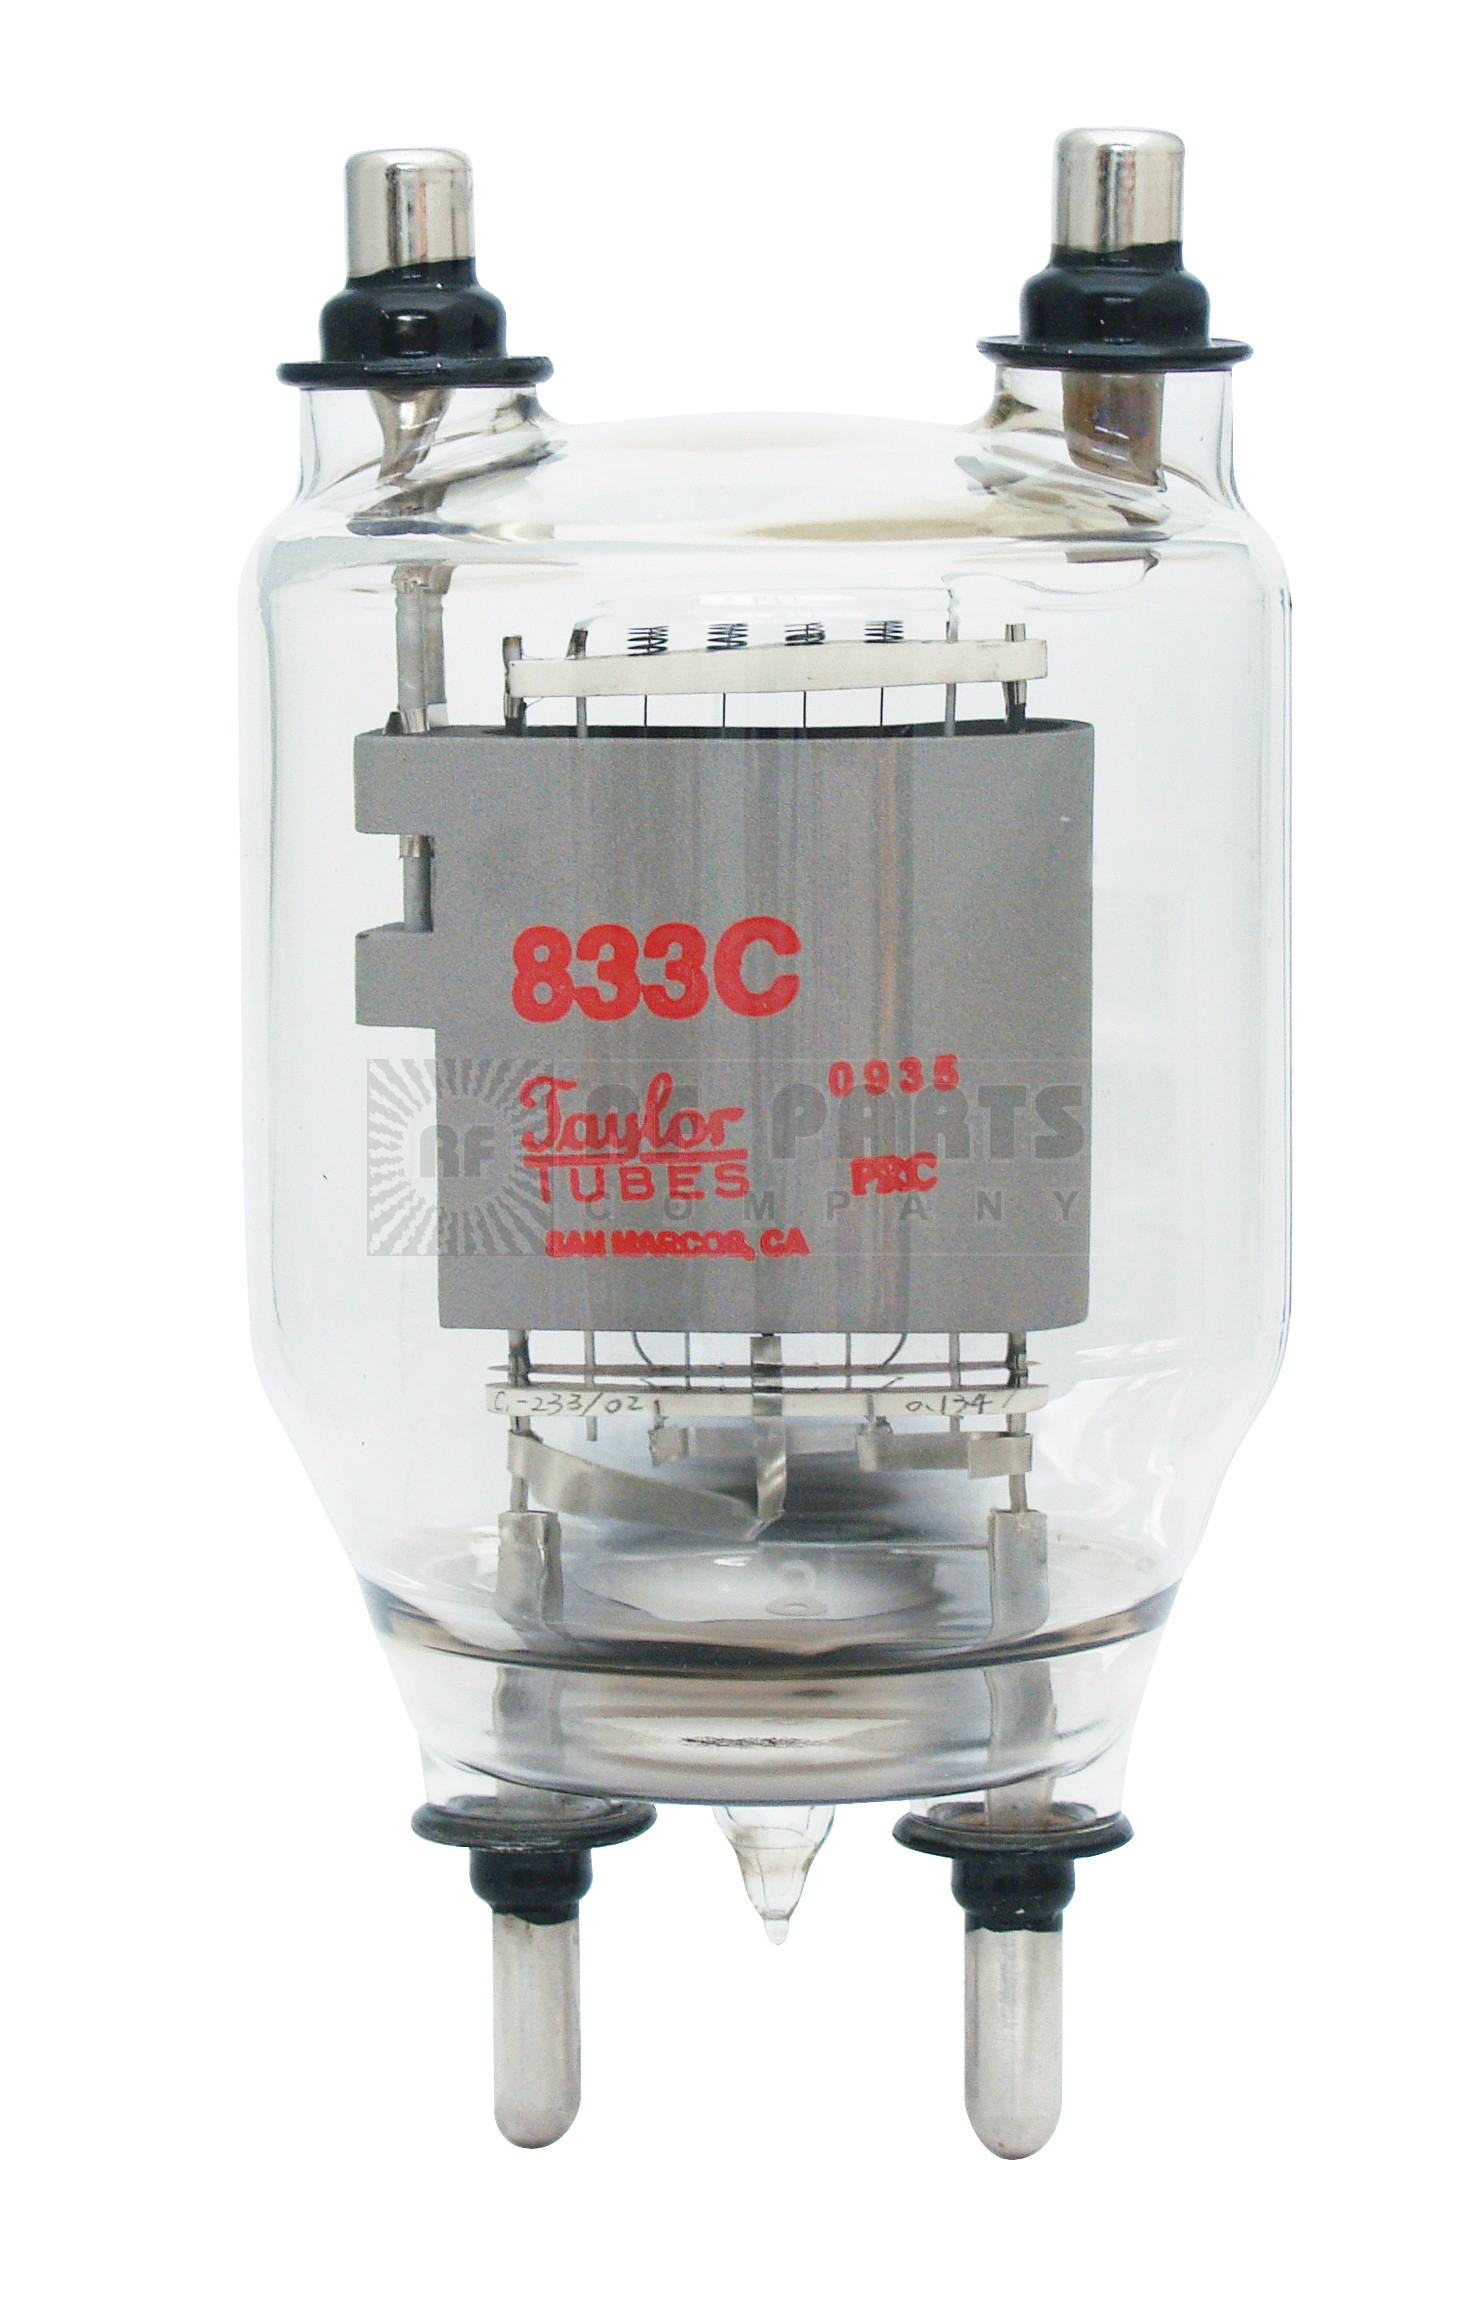 833C-TAY Tube, taylor graphite